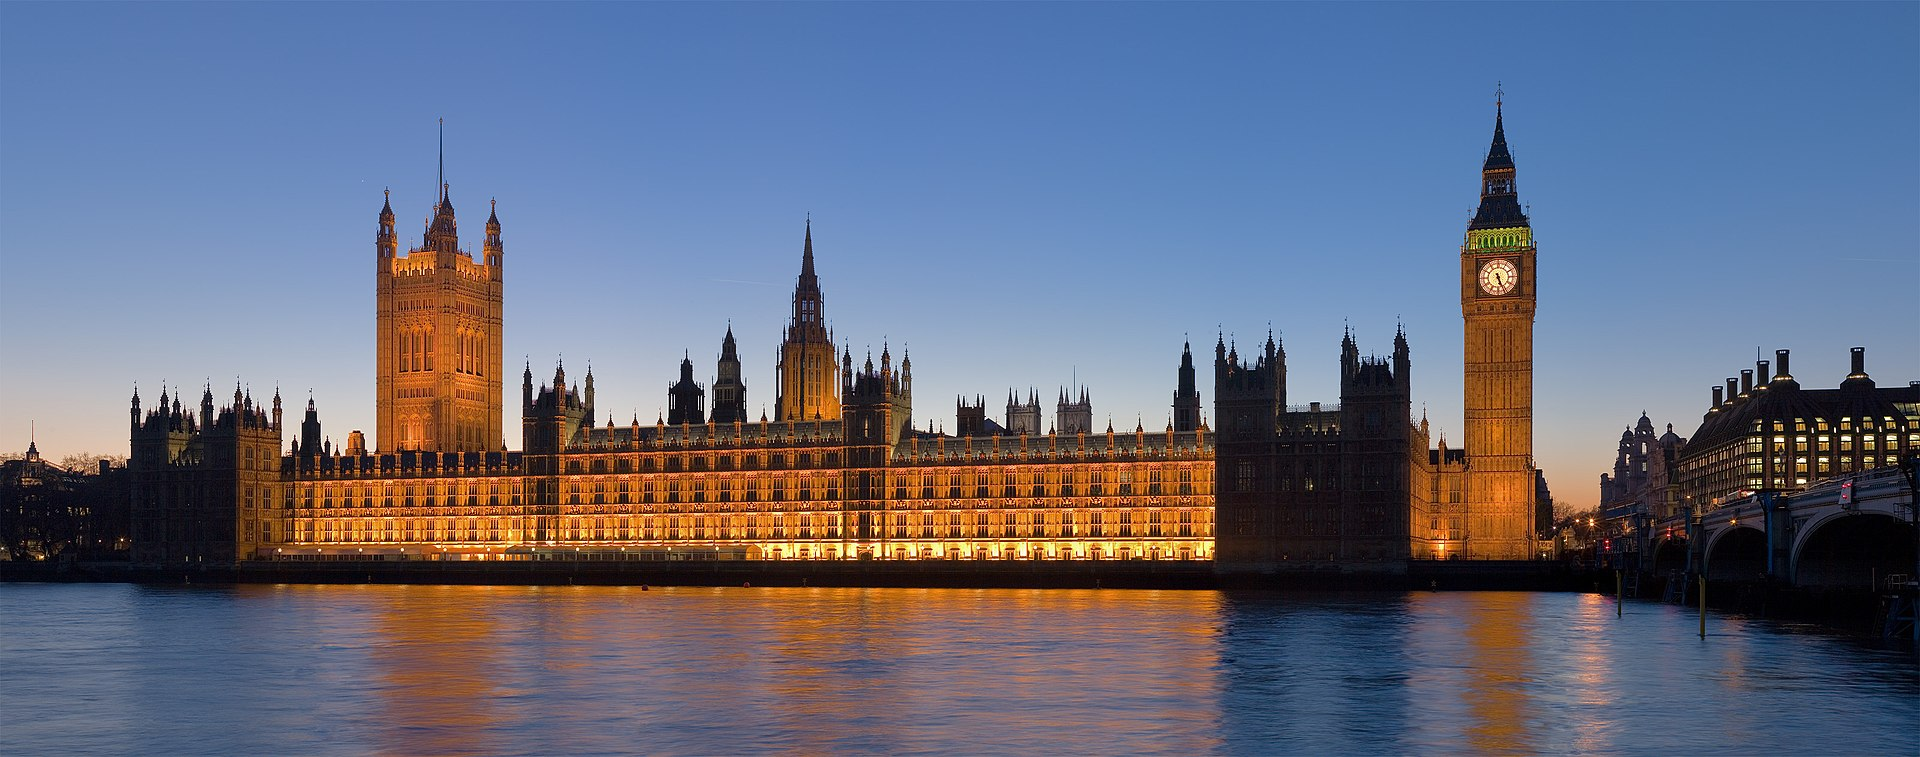 Palace of Westminster. Foto: Diliff